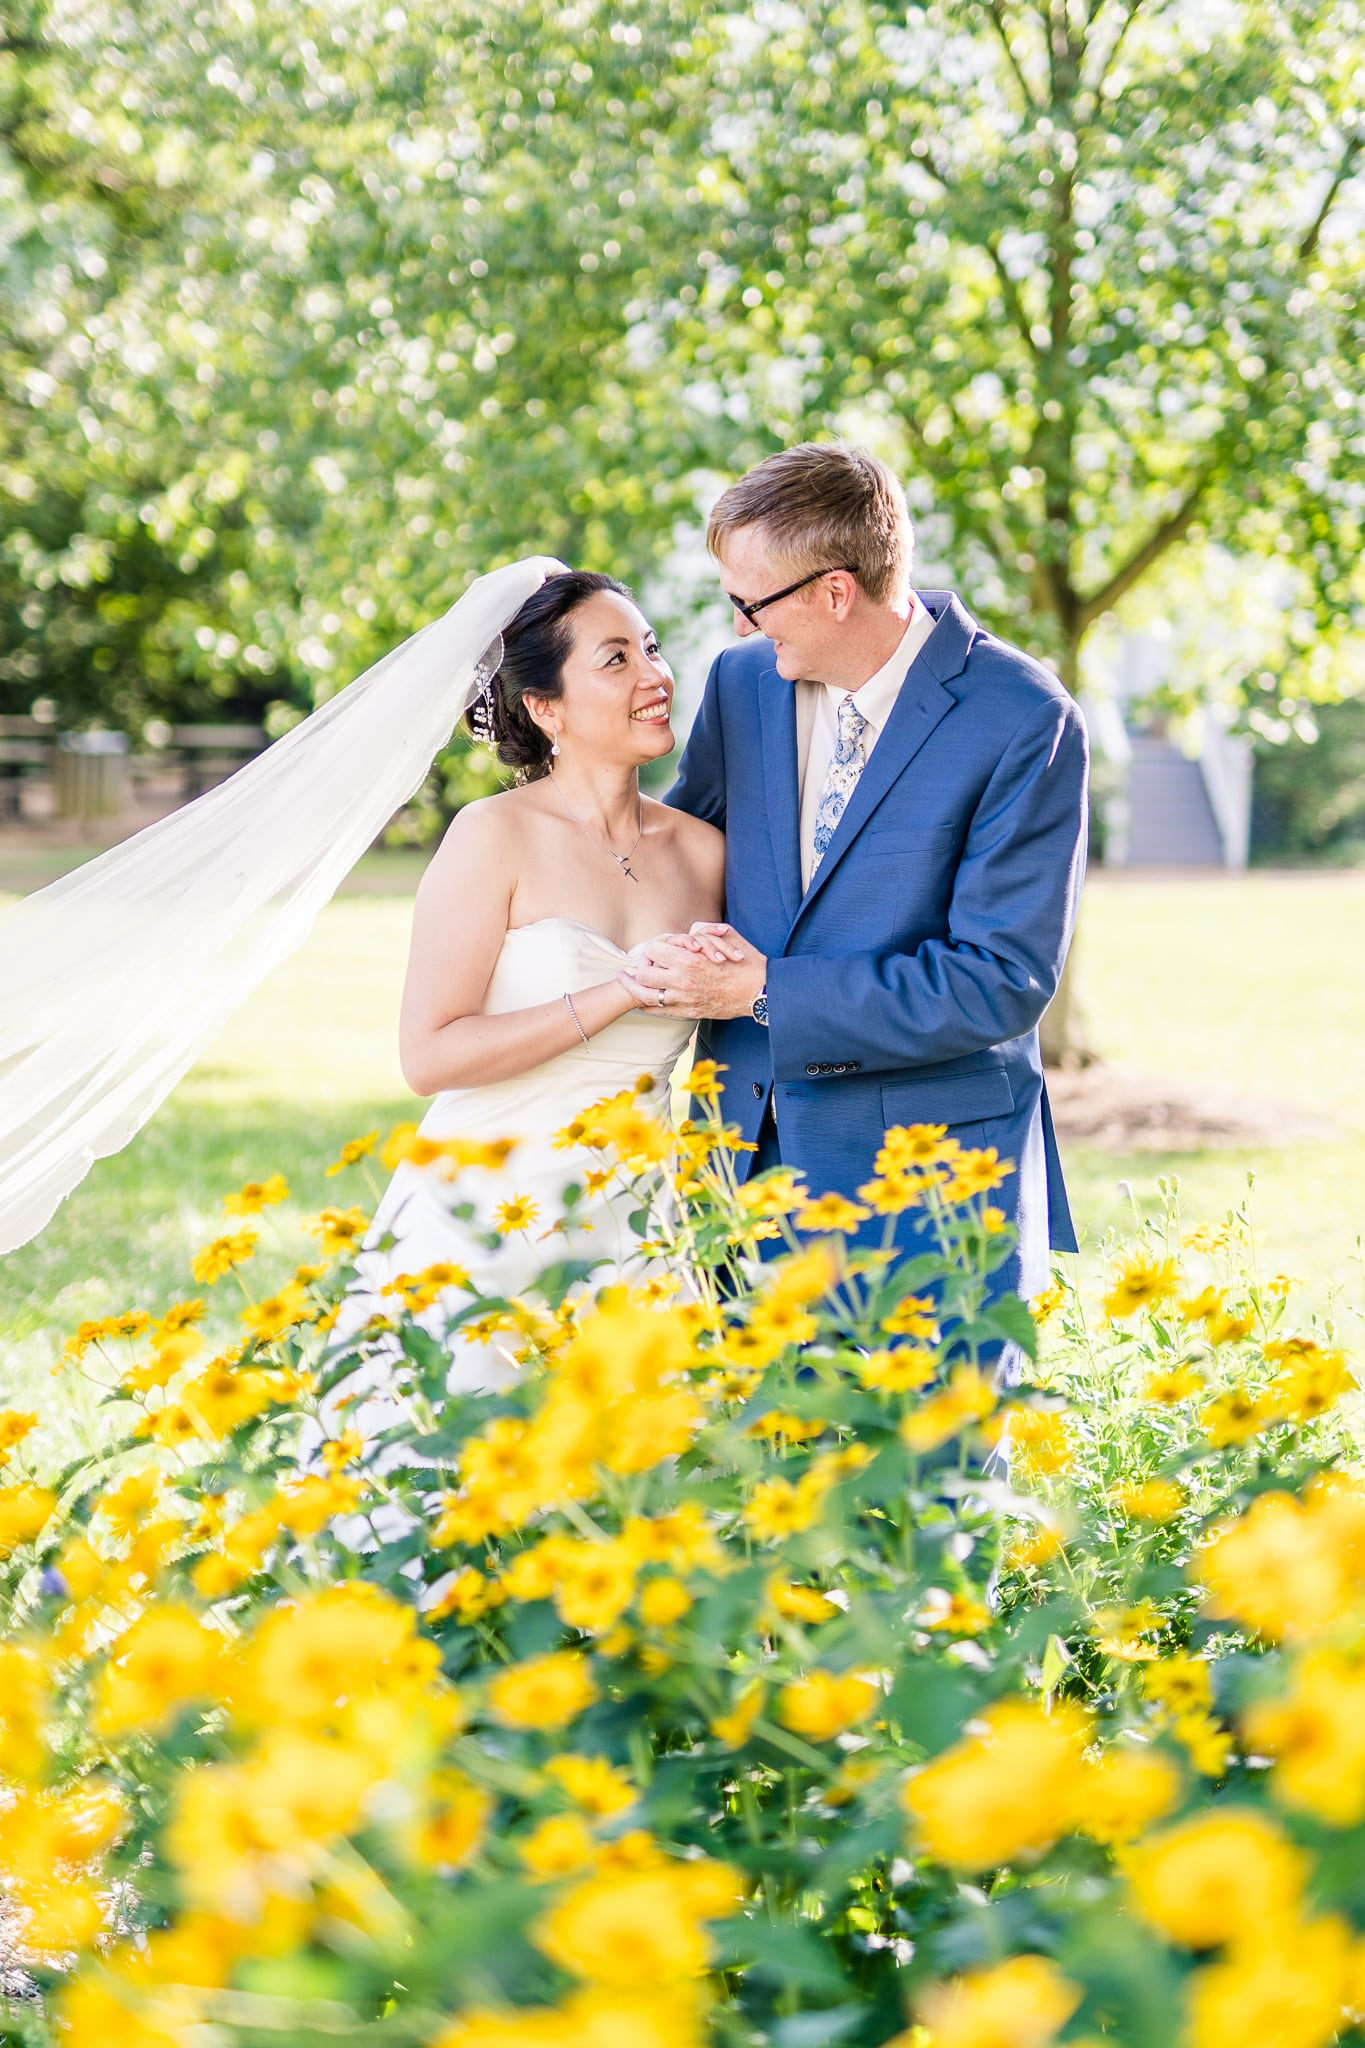 A Taiwanese bride looks lovingly at her groom behind wildflowers across from the Vienna Presbyterian Church where they were married in Vienna, Northern Virginia